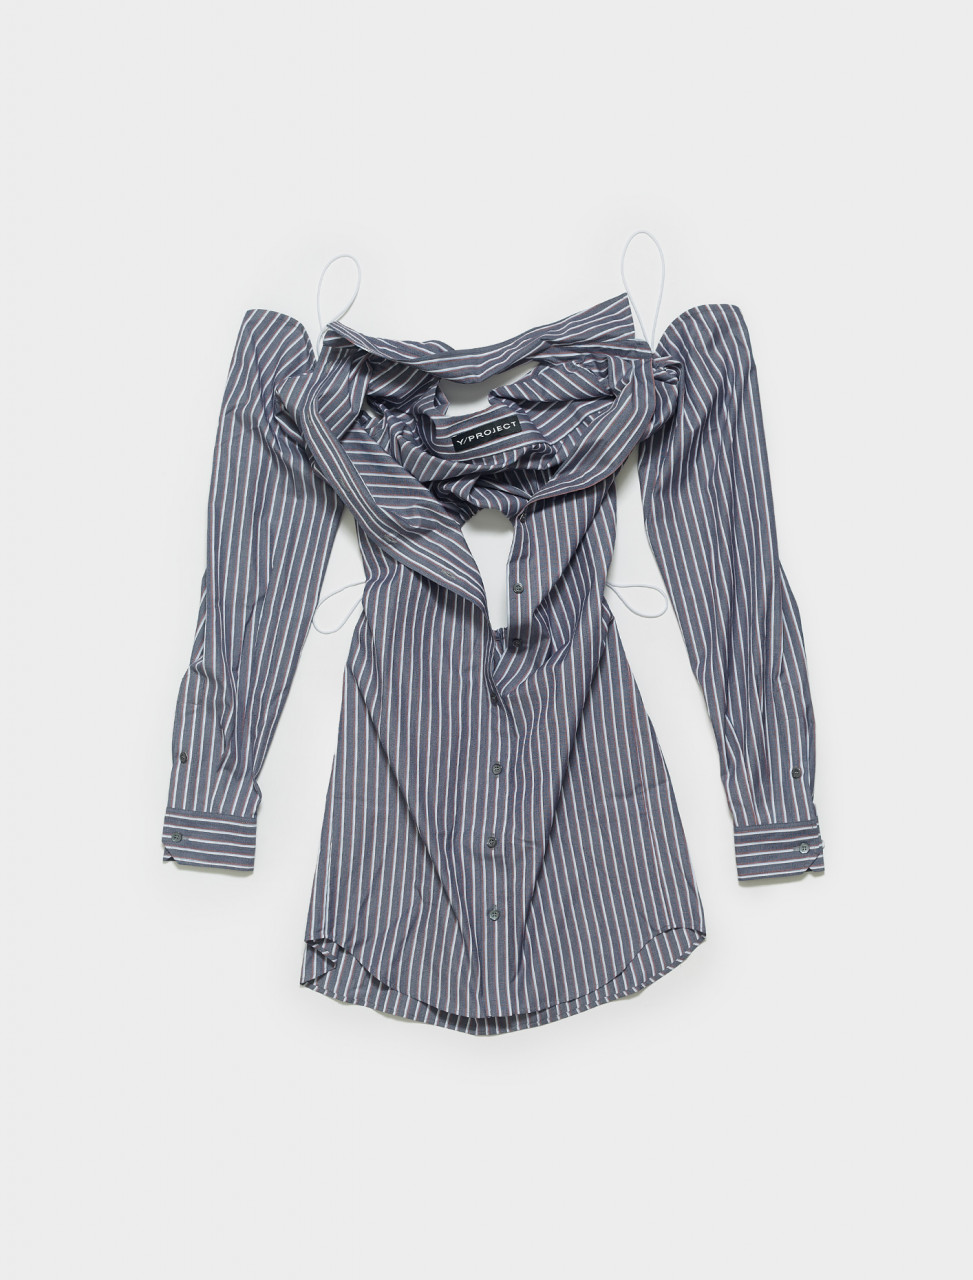 WSHIRT54-S20 Y PROJECT CONVERTIBLE SHIRT DRESS IN GREY & RED STRIPE